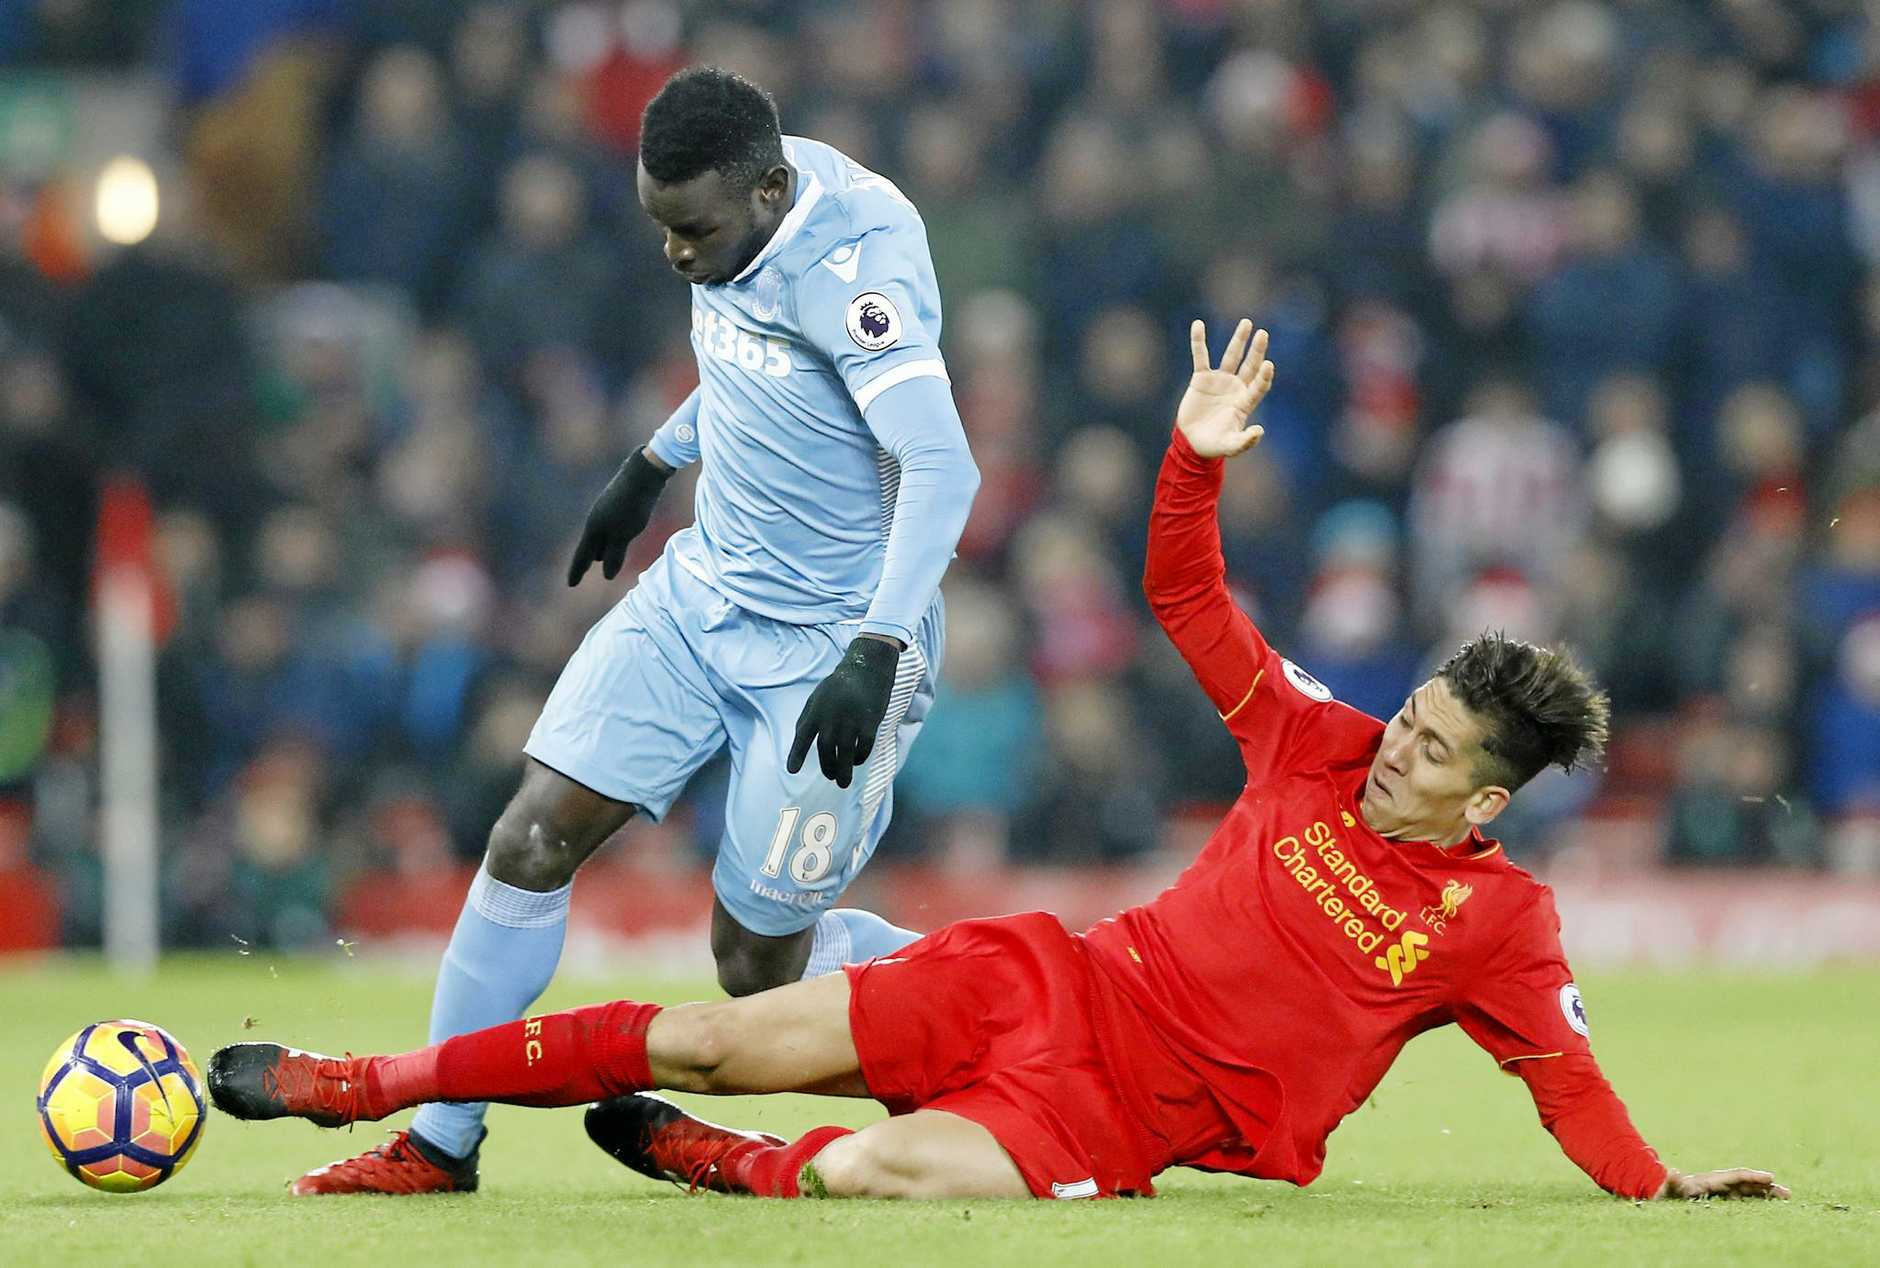 Stoke City's Mame Biram Diouf (left) and Liverpool's Roberto Firmino battle for the ball.